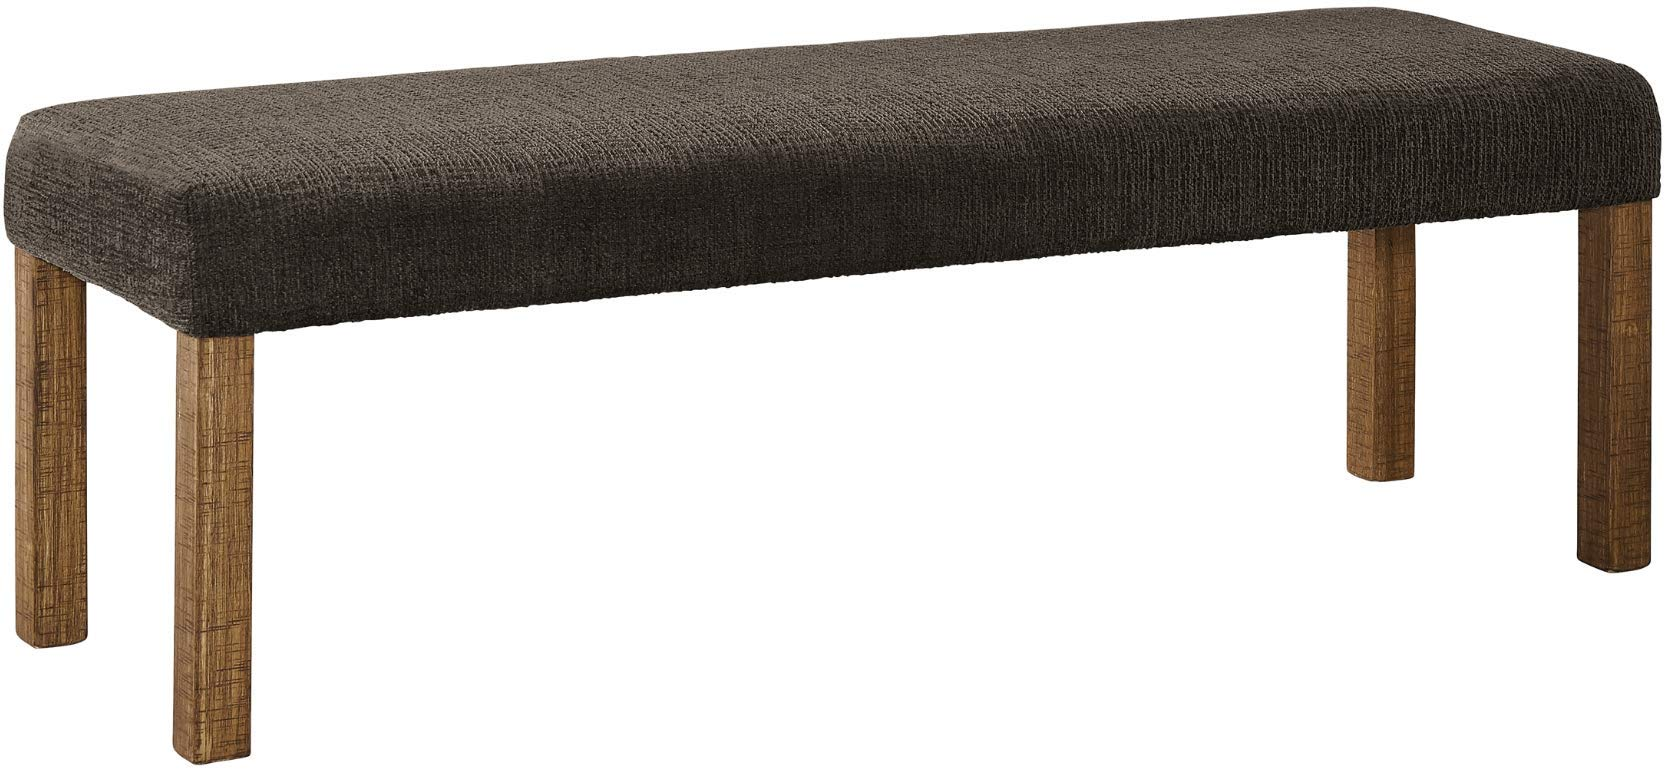 Ashley Furniture Signature Design - Tamilo Dining Room Bench - Rustic Style - Two-tone by Signature Design by Ashley